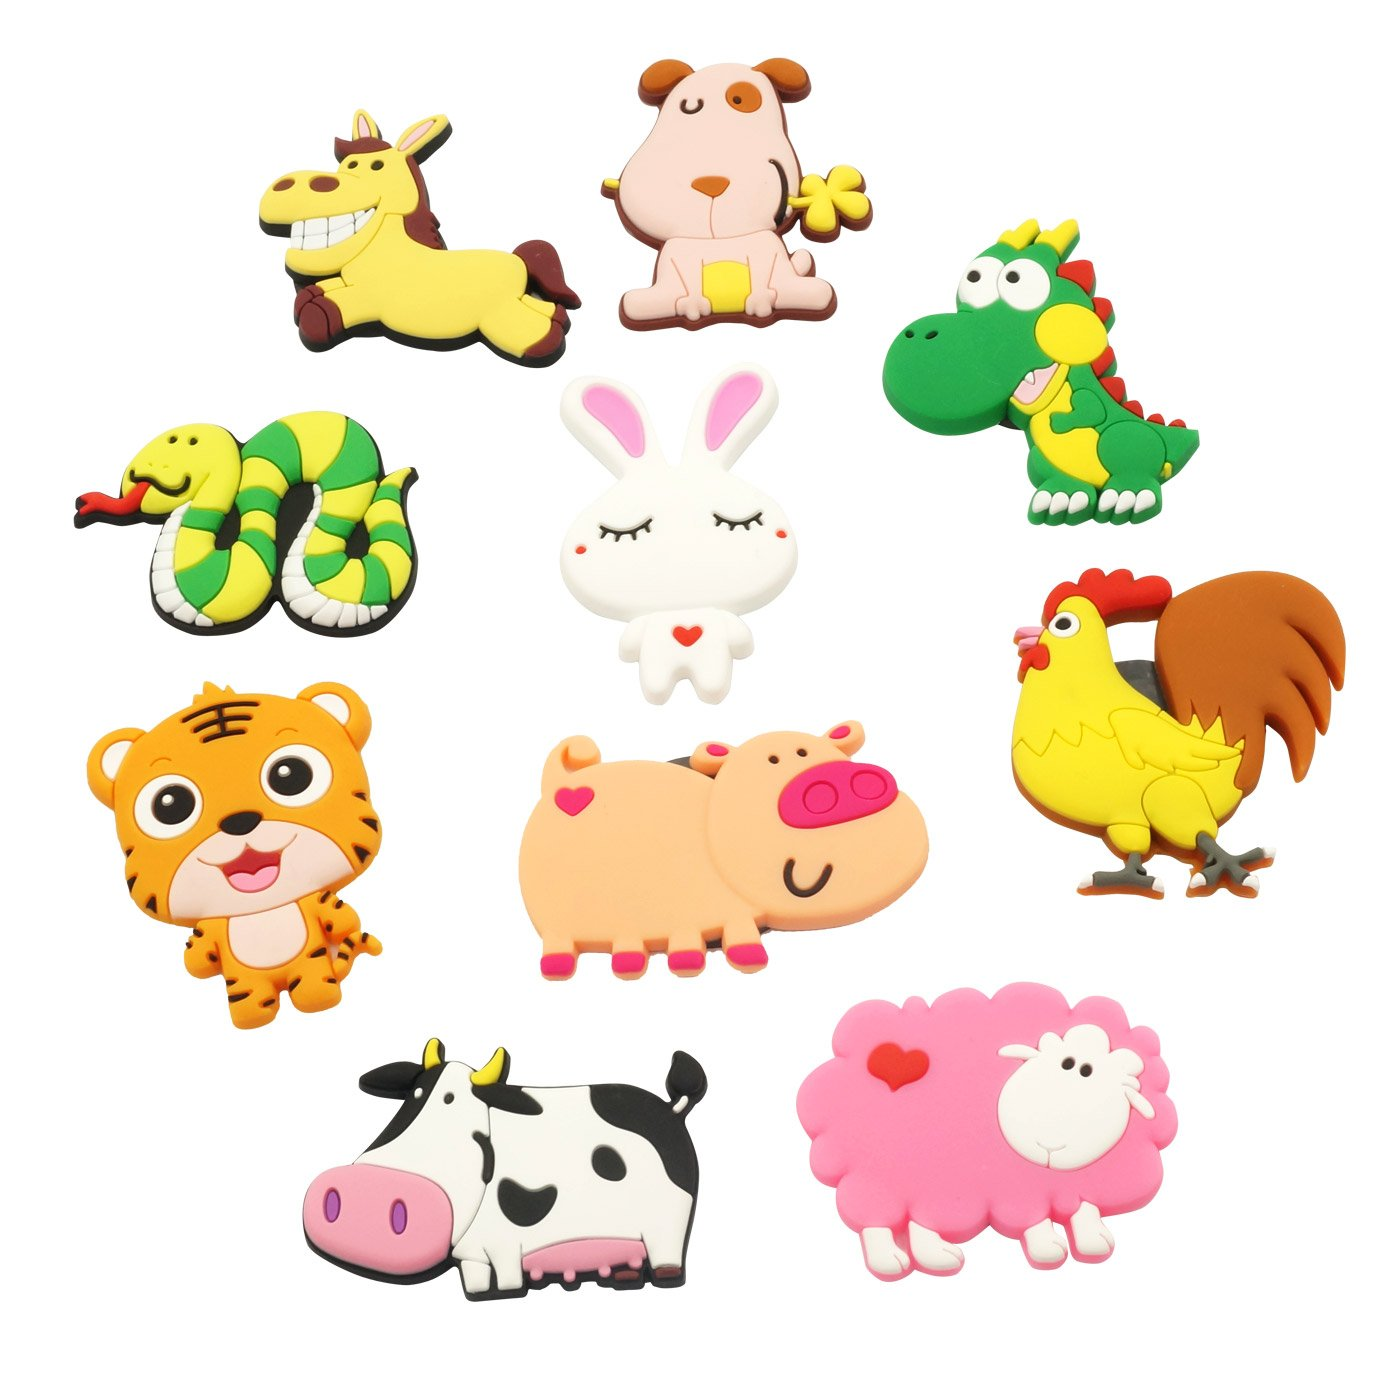 Fridge Magnets Magnetic Toys for Kids Cartoon Farm Animals Magnets Educational Toys Funky Animals Magnetic Toys for Toddler